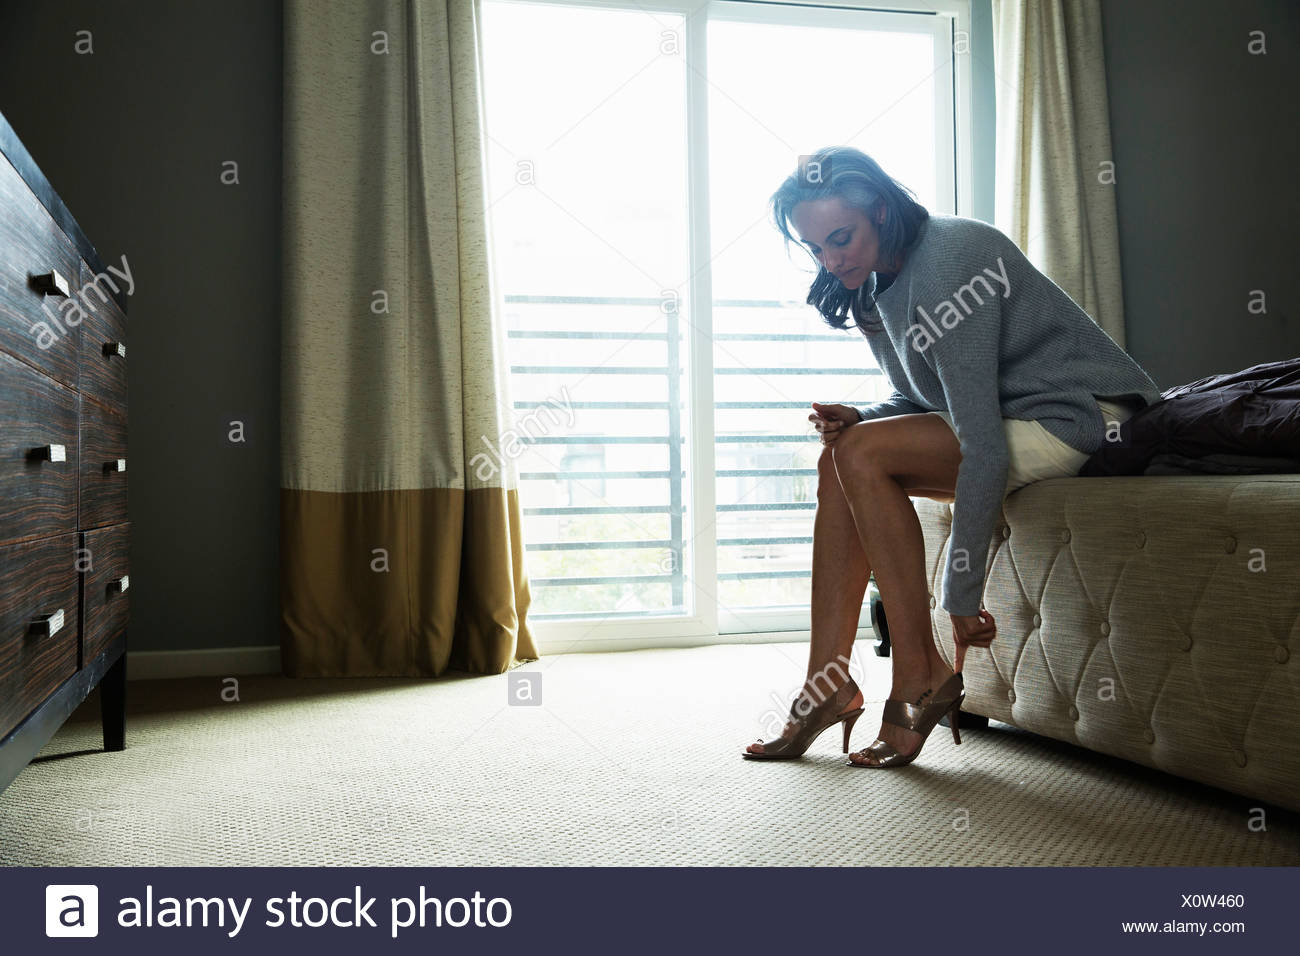 Mature woman sitting on bed putting on high heels - Stock Image